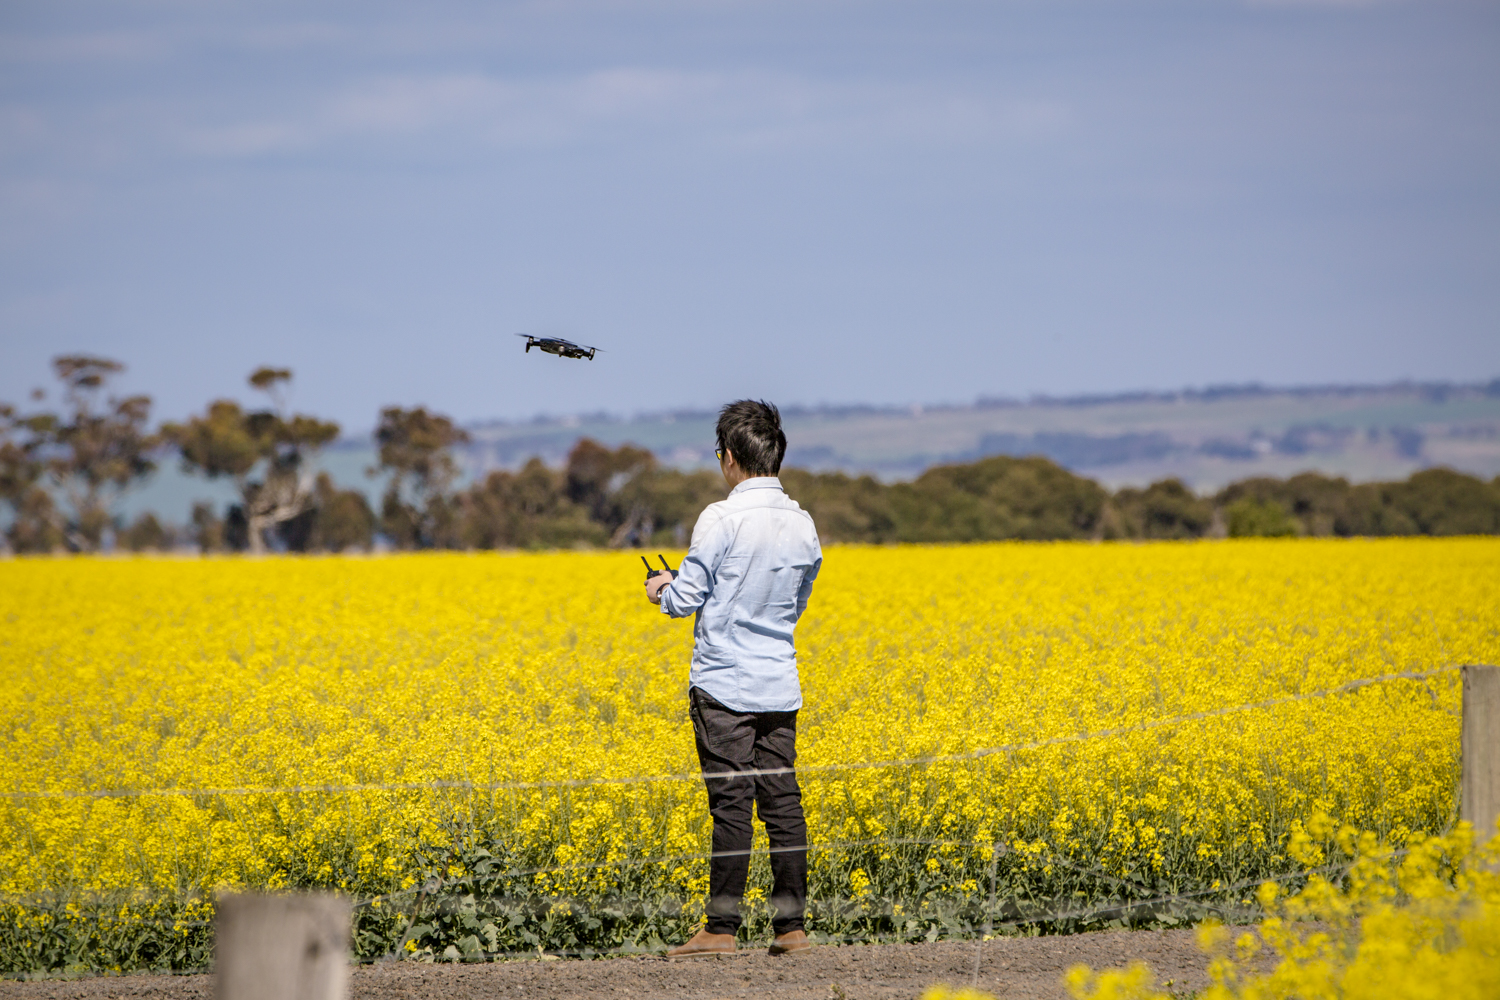 Launching a drone to fly over the canola fields, if he turned around he would see the planes taking off and landing directly behind him.